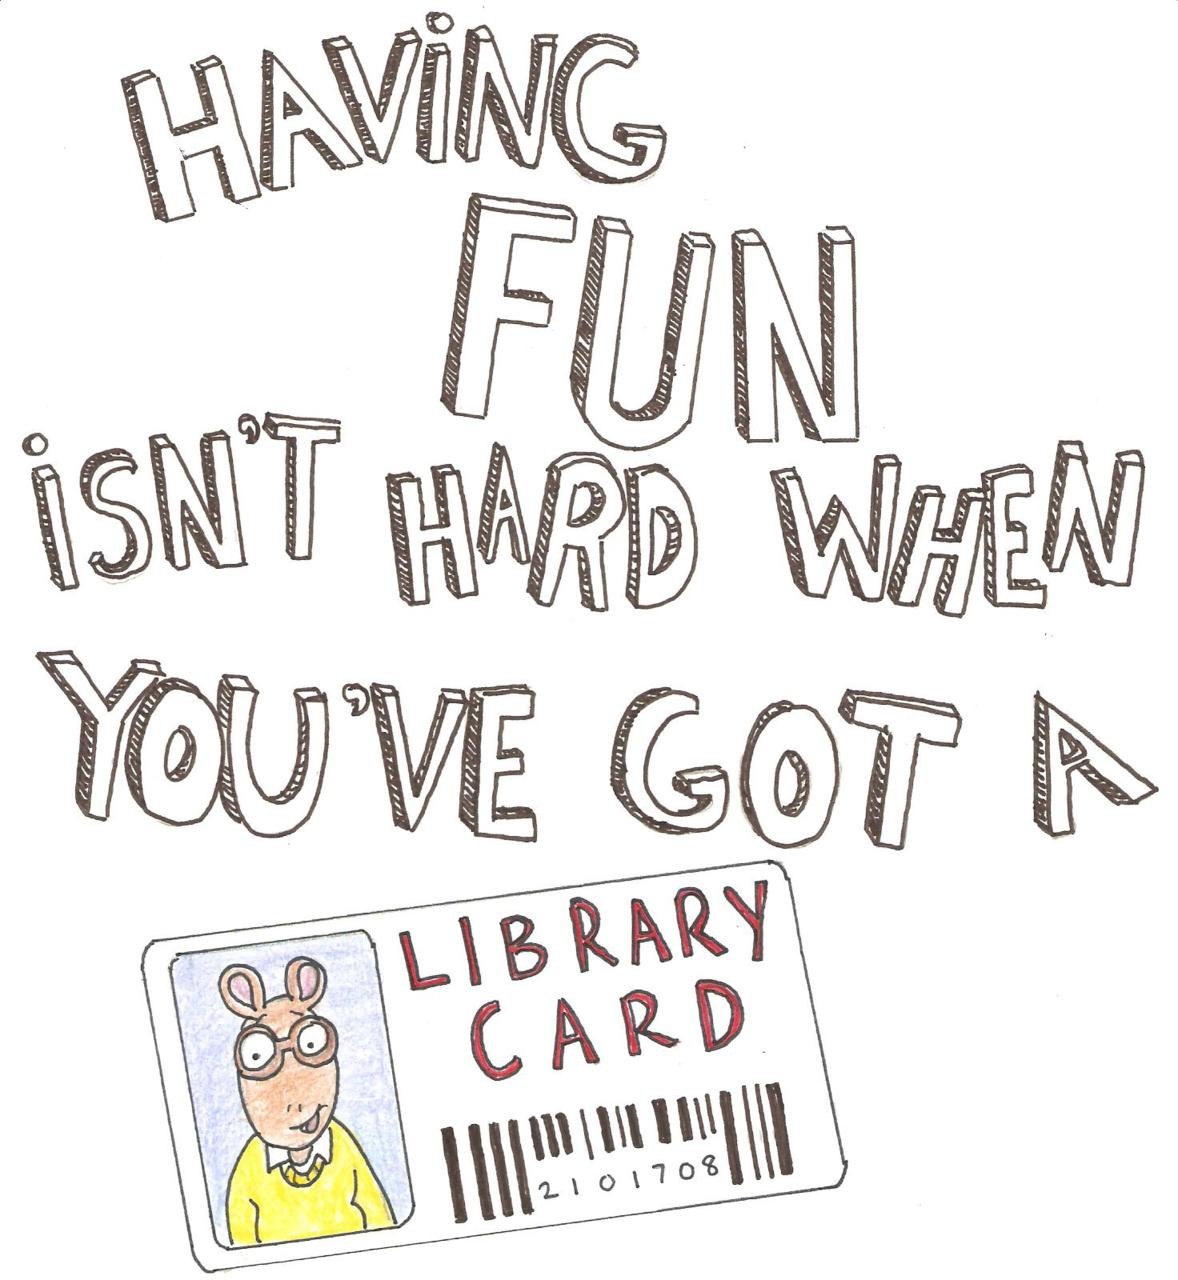 Having Fun Isn't Hard When  You've Got a Library Card graphic from tv show, Arthur